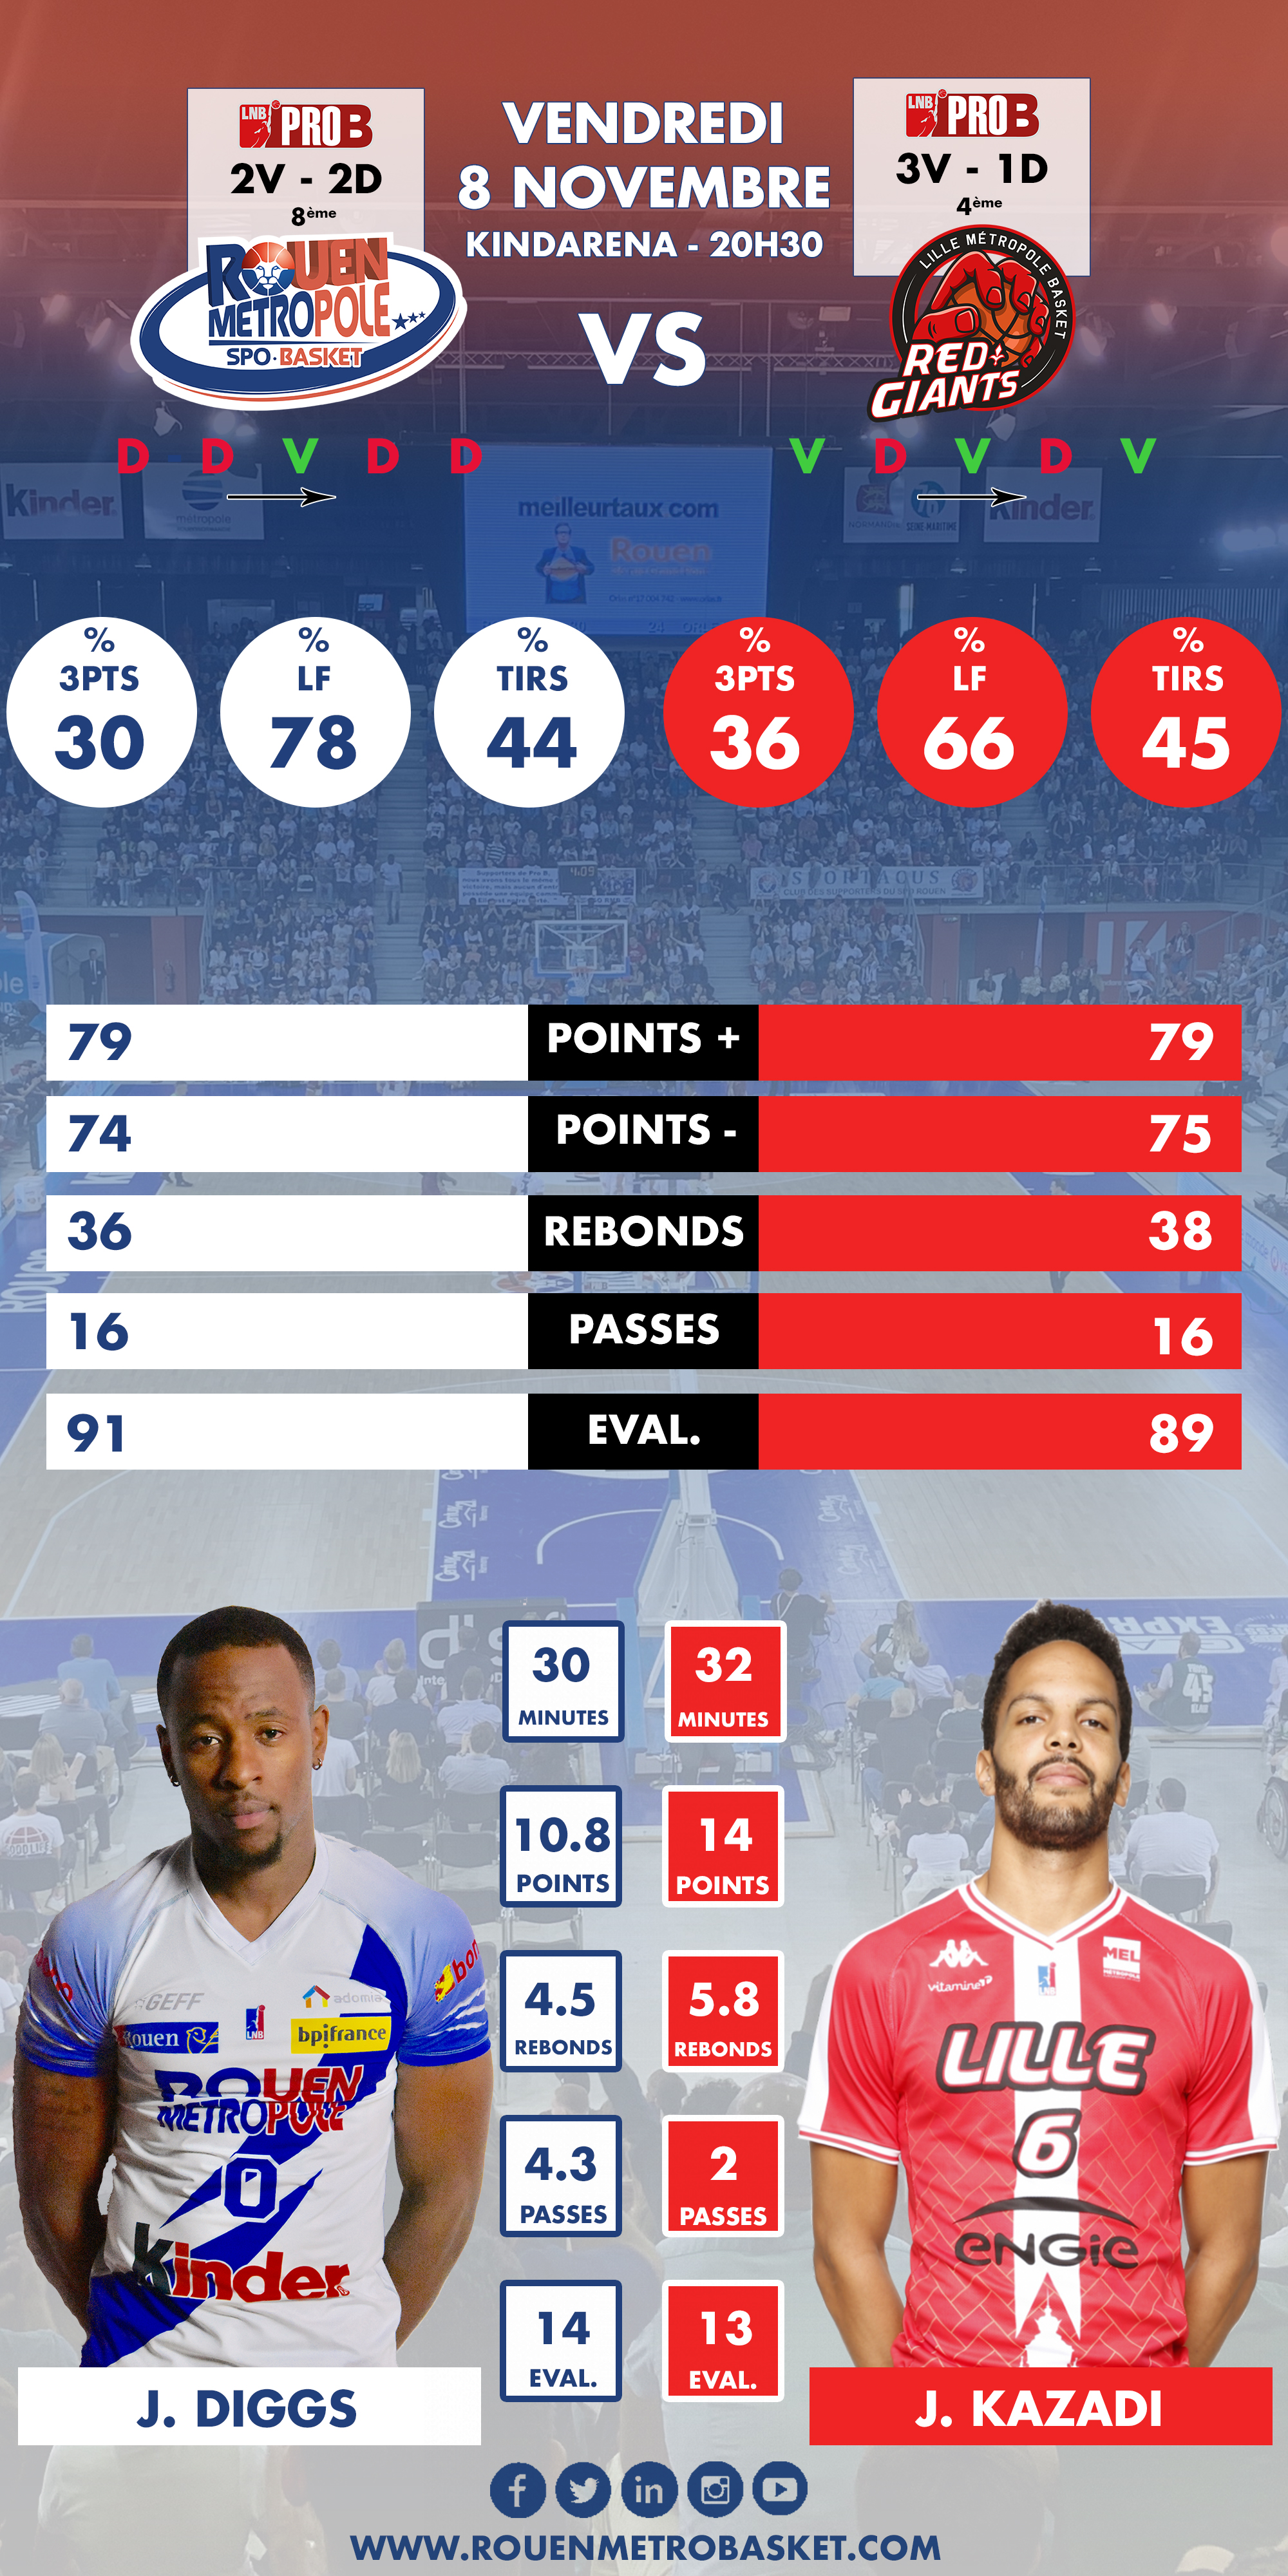 https://rouenmetrobasket.com/wp-content/uploads/2019/11/Infographie-J5-PRO-B-RMB-Lille.jpg